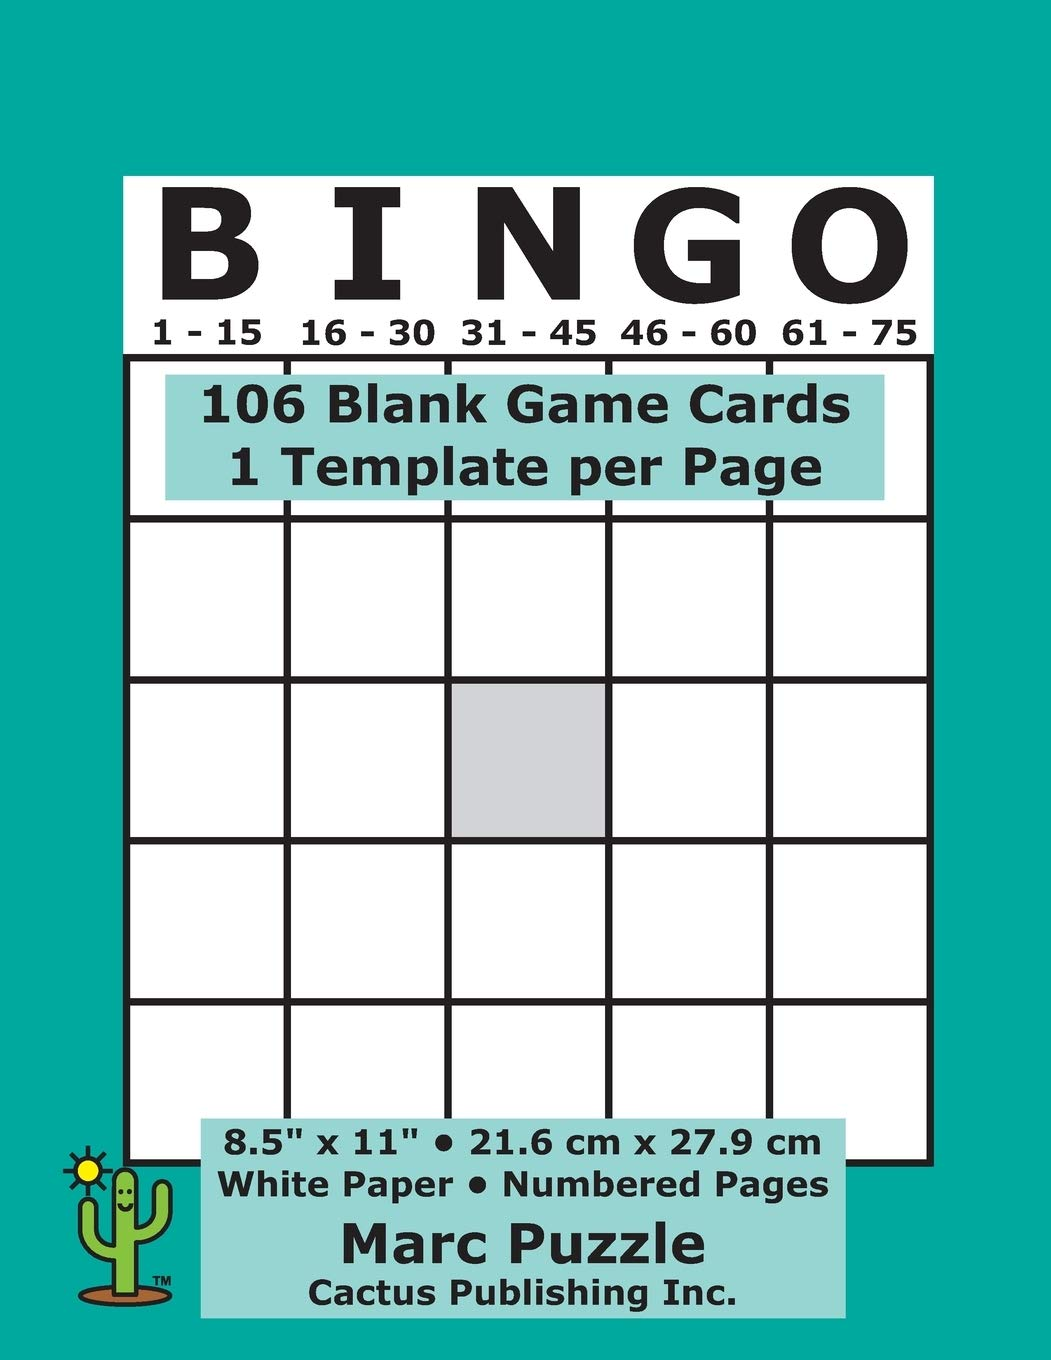 Bingo 106 Blank Game Cards 1 Bingo Template Per Page 8 5 X 11 21 6 X 27 9 Cm White Paper Page Numbers Empty Grid Board Score Scorecards Scoresheets Large Print Cactus Publishing